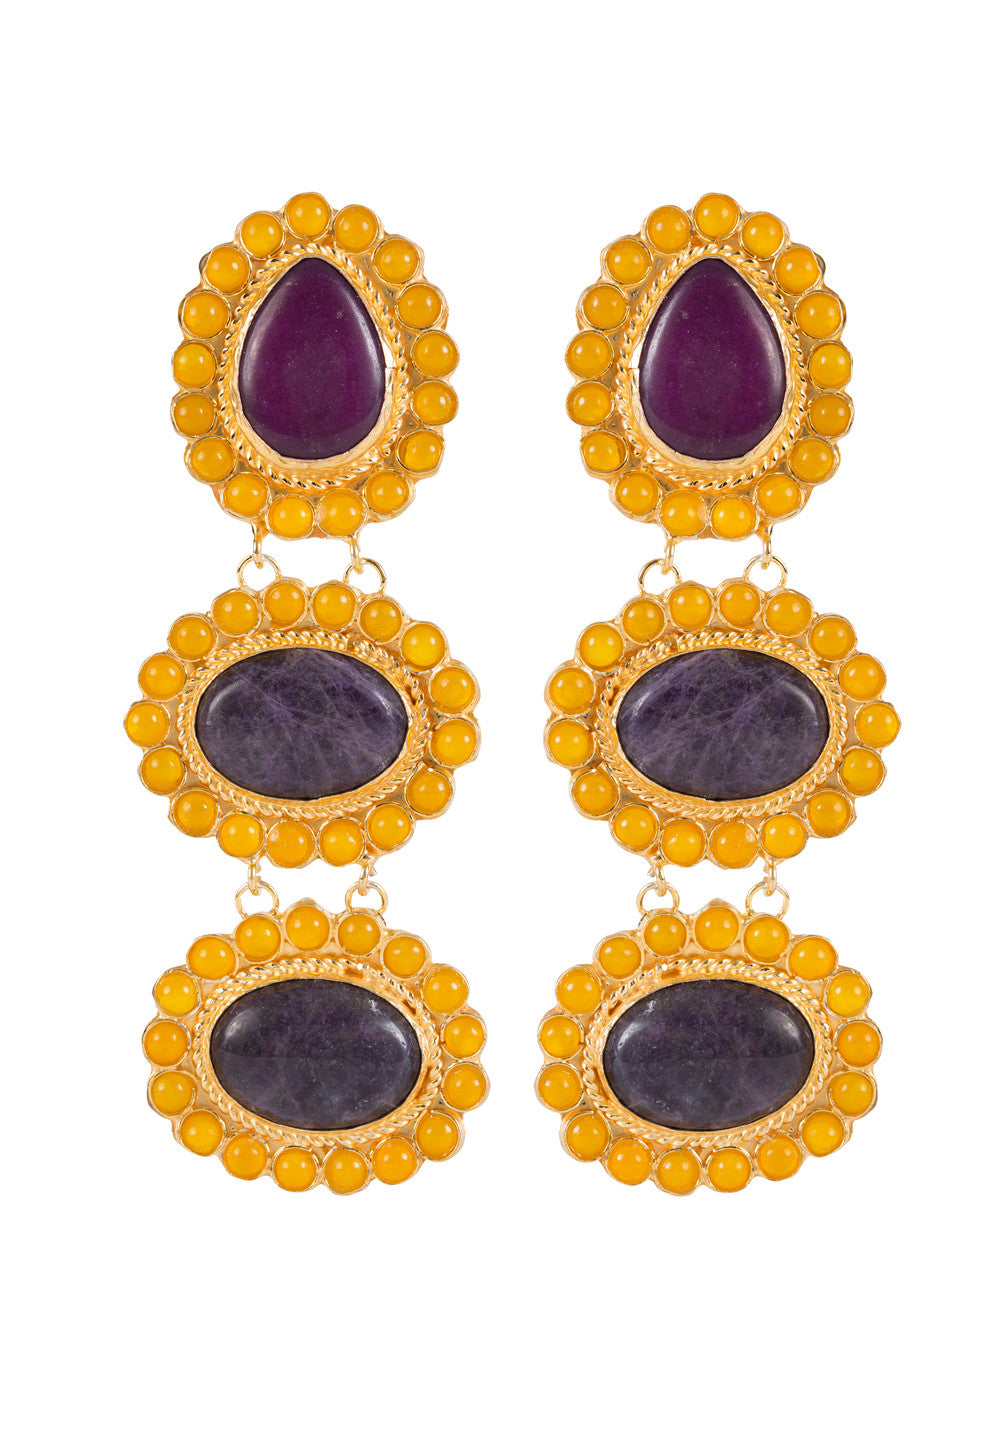 Alexandria Earrings Gold & Ameythst